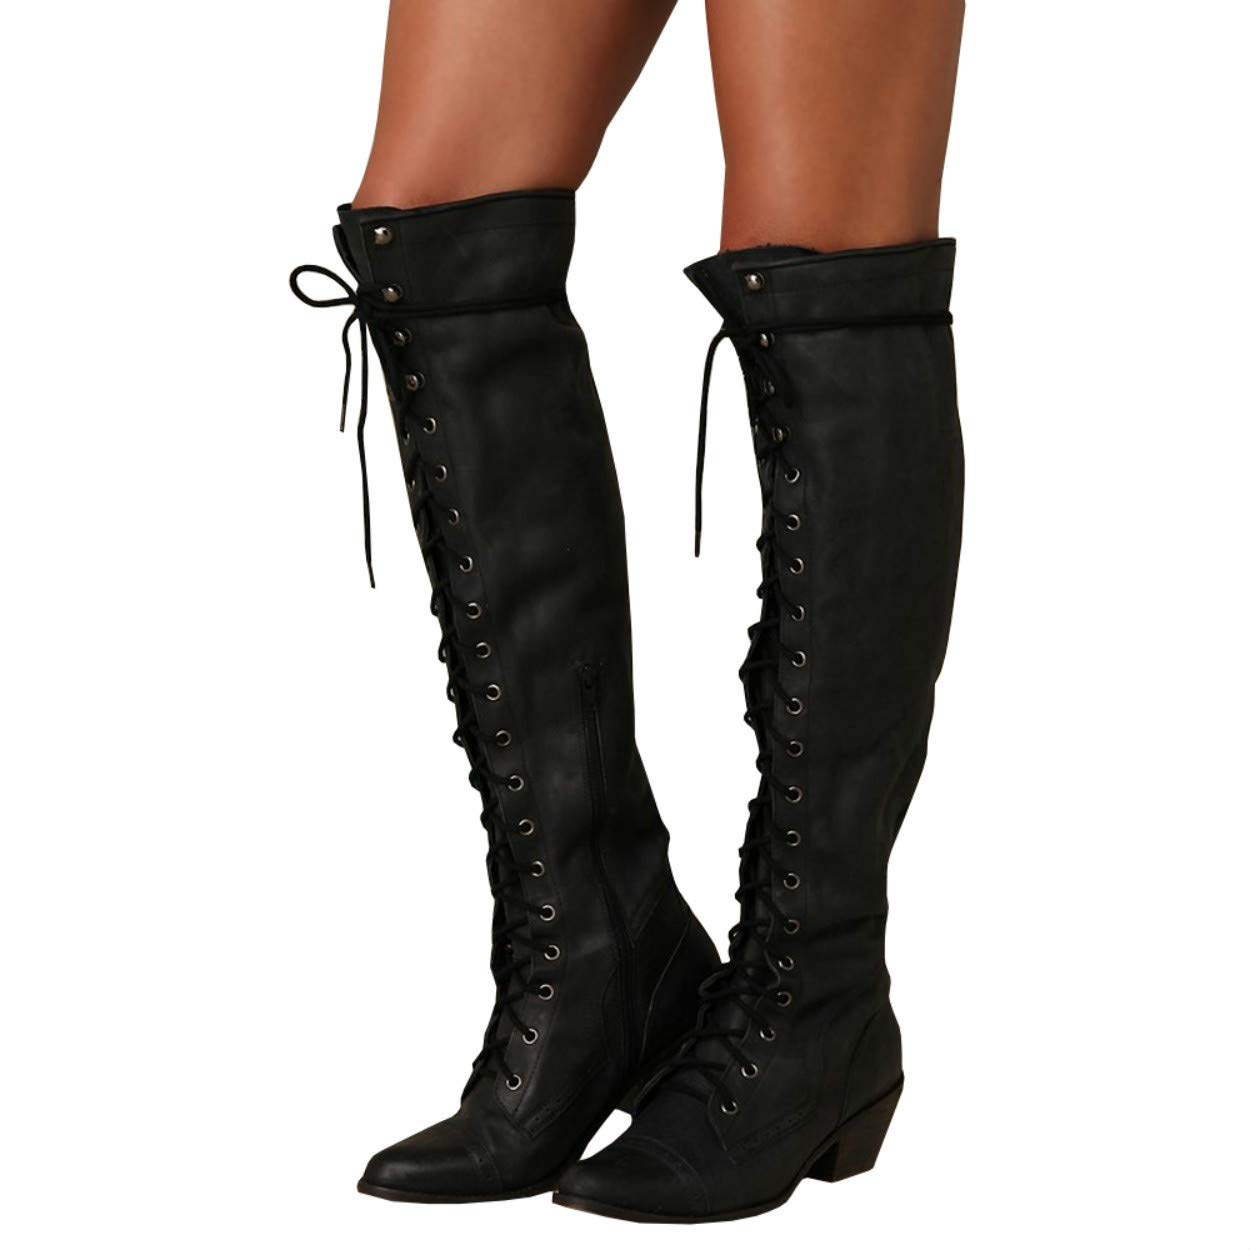 Women's Black Faux Leather Knee-High Lace-Up Boots - DeluxeAdultCostumes.com